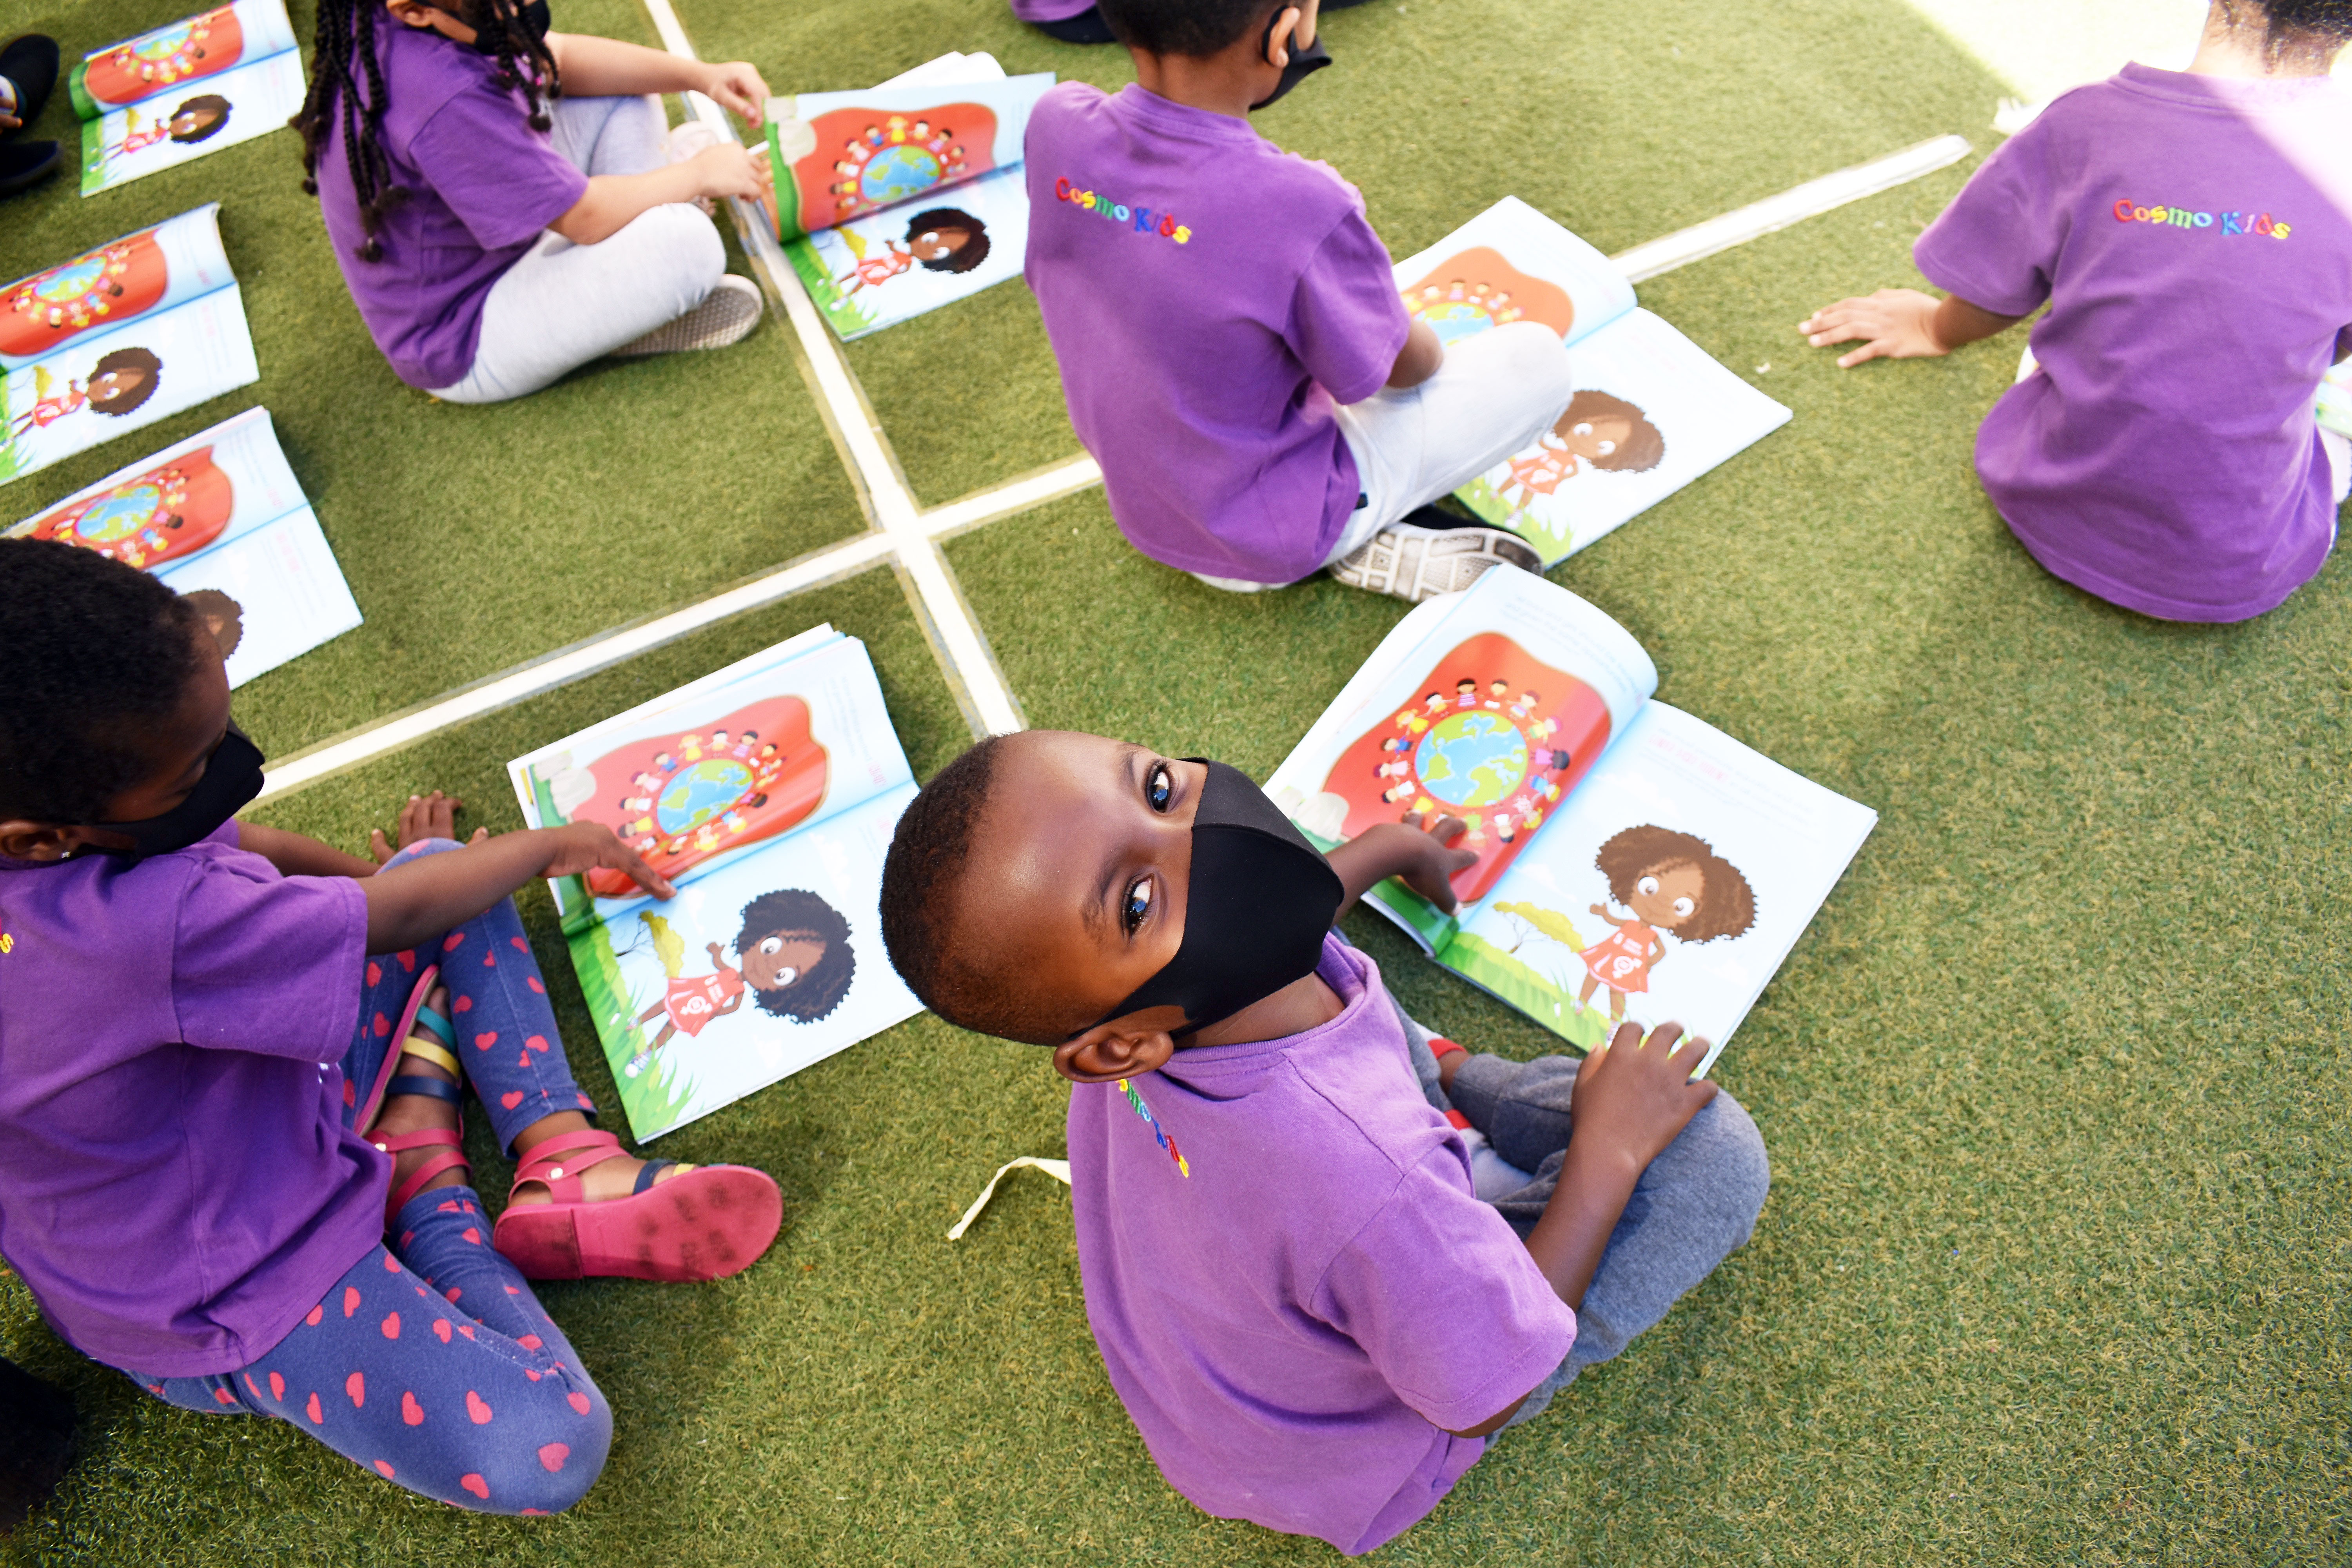 A young child seated on grass with a black mask on surrounded by other learners